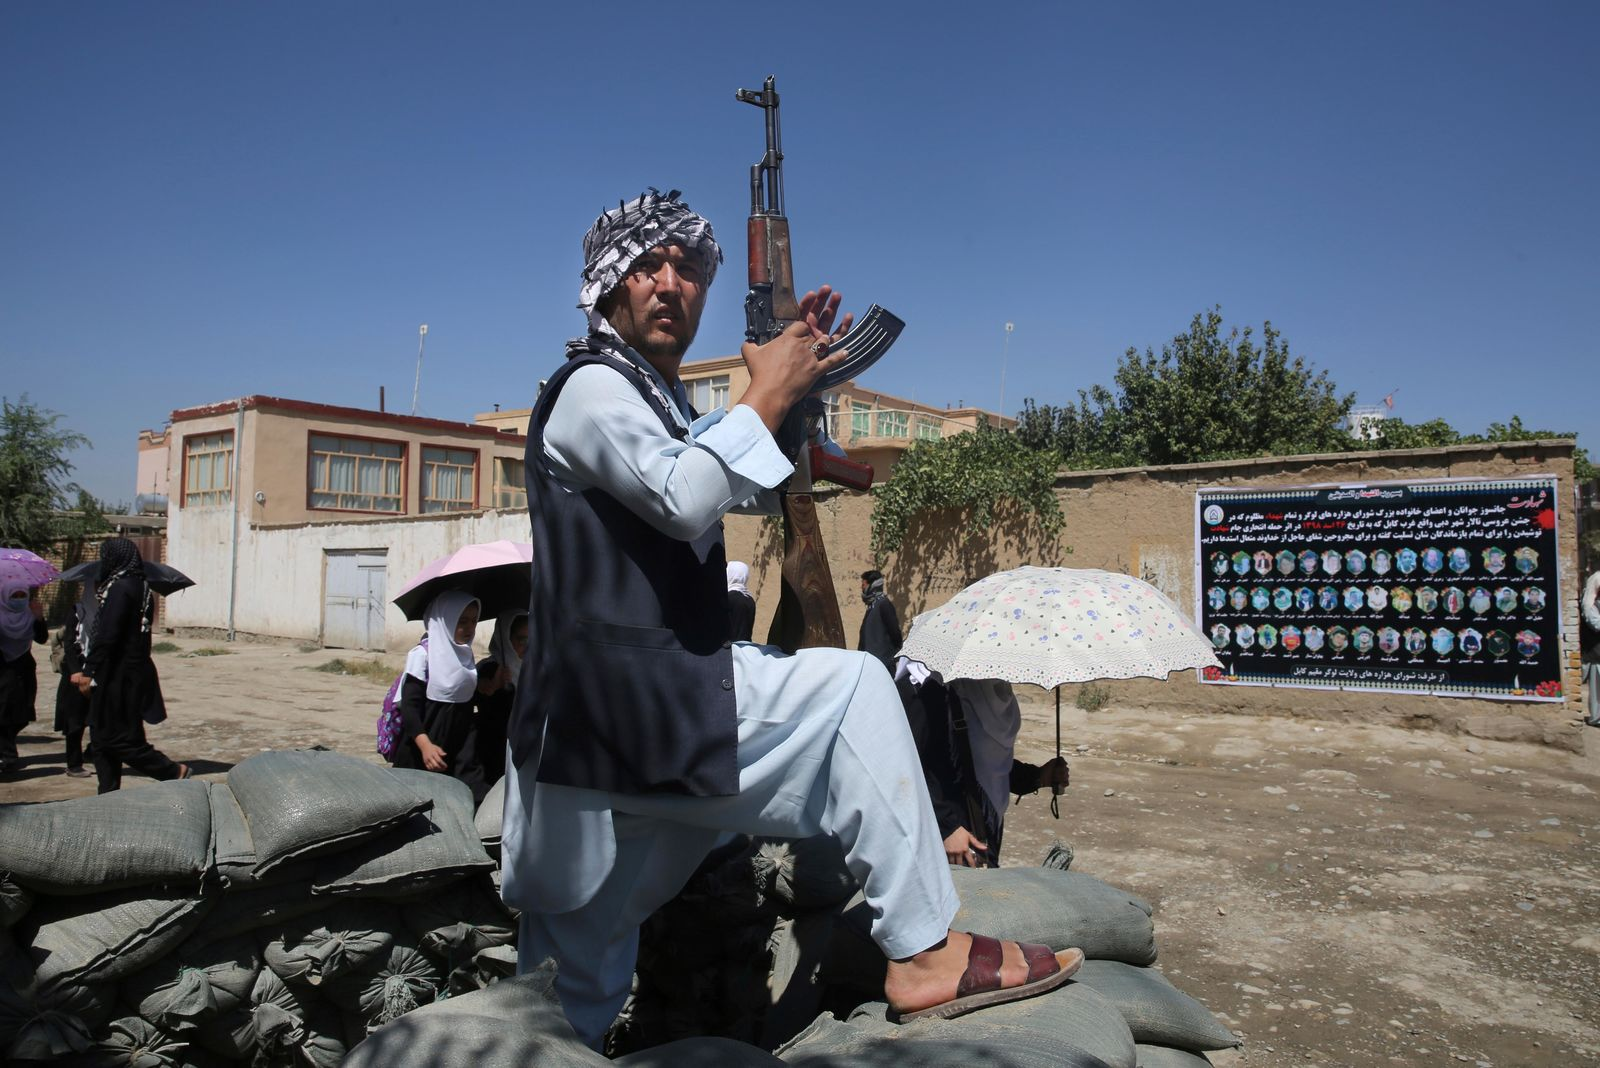 An Afghan volunteer stands guard outside a mosque during a memorial service for the victims of the Dubai City wedding hall bombing in Kabul, Afghanistan, Tuesday, Aug. 20, 2019. Hundreds of people have gathered in mosques in Afghanistan's capital for memorials for scores of people killed in a horrific suicide bombing at a Kabul wedding over the weekend. (AP Photo/Rafiq Maqbool)